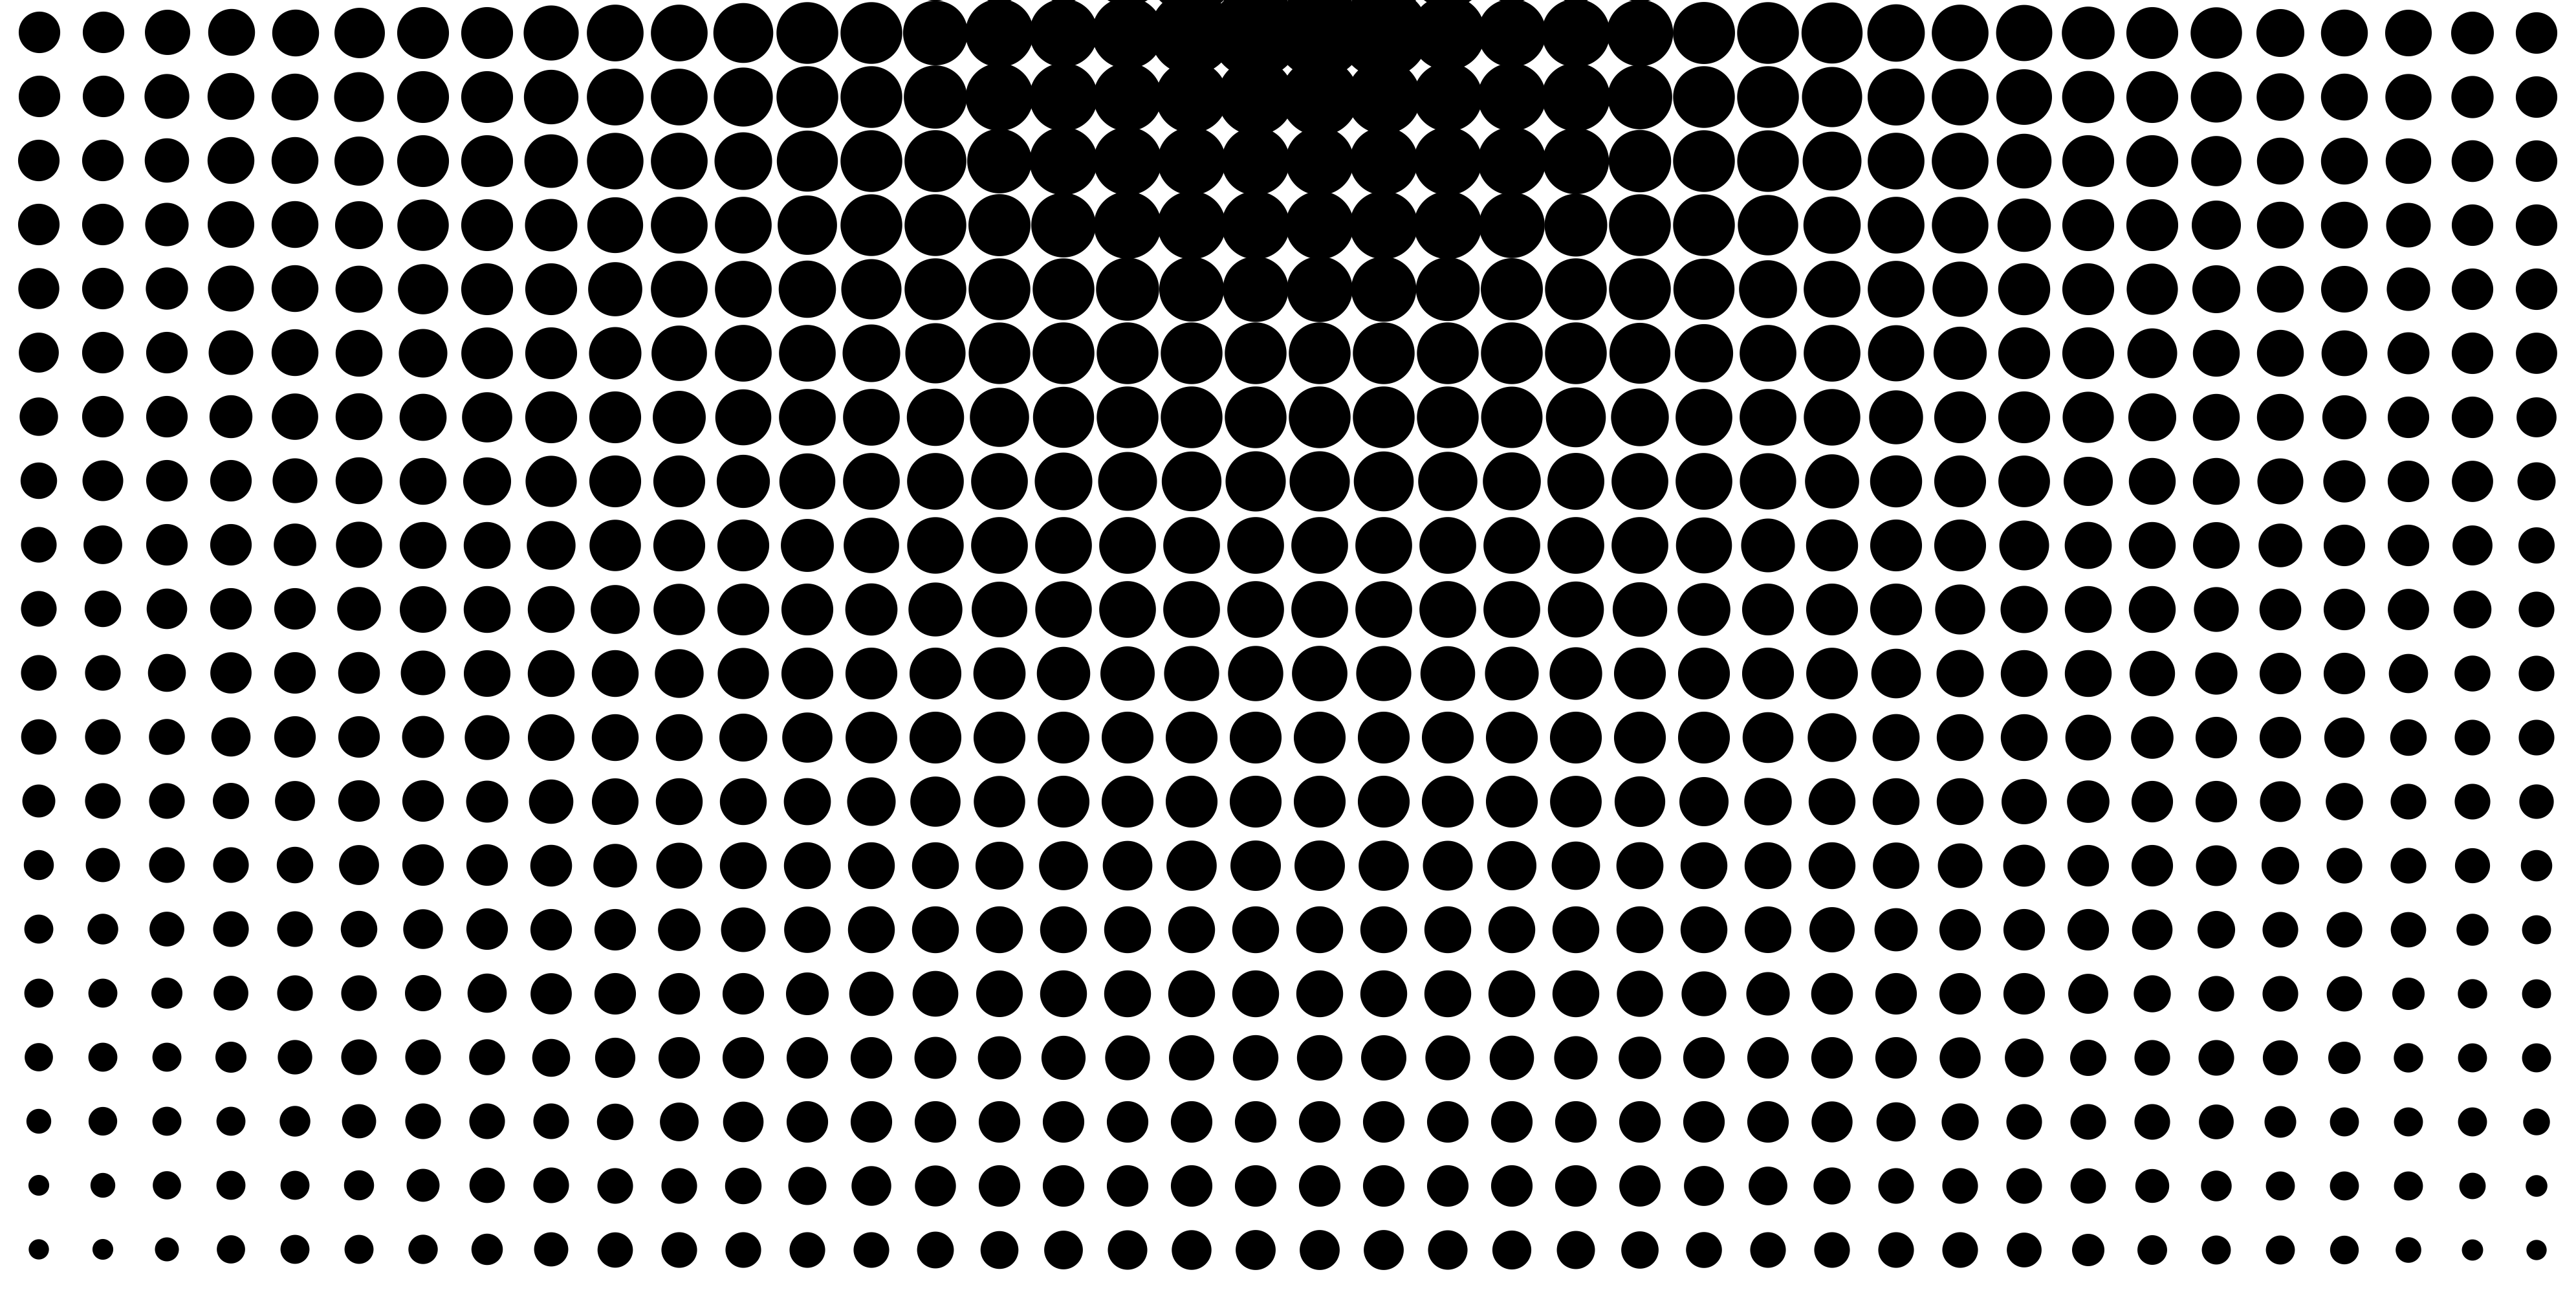 Circular Black and White Halftone Pattern.